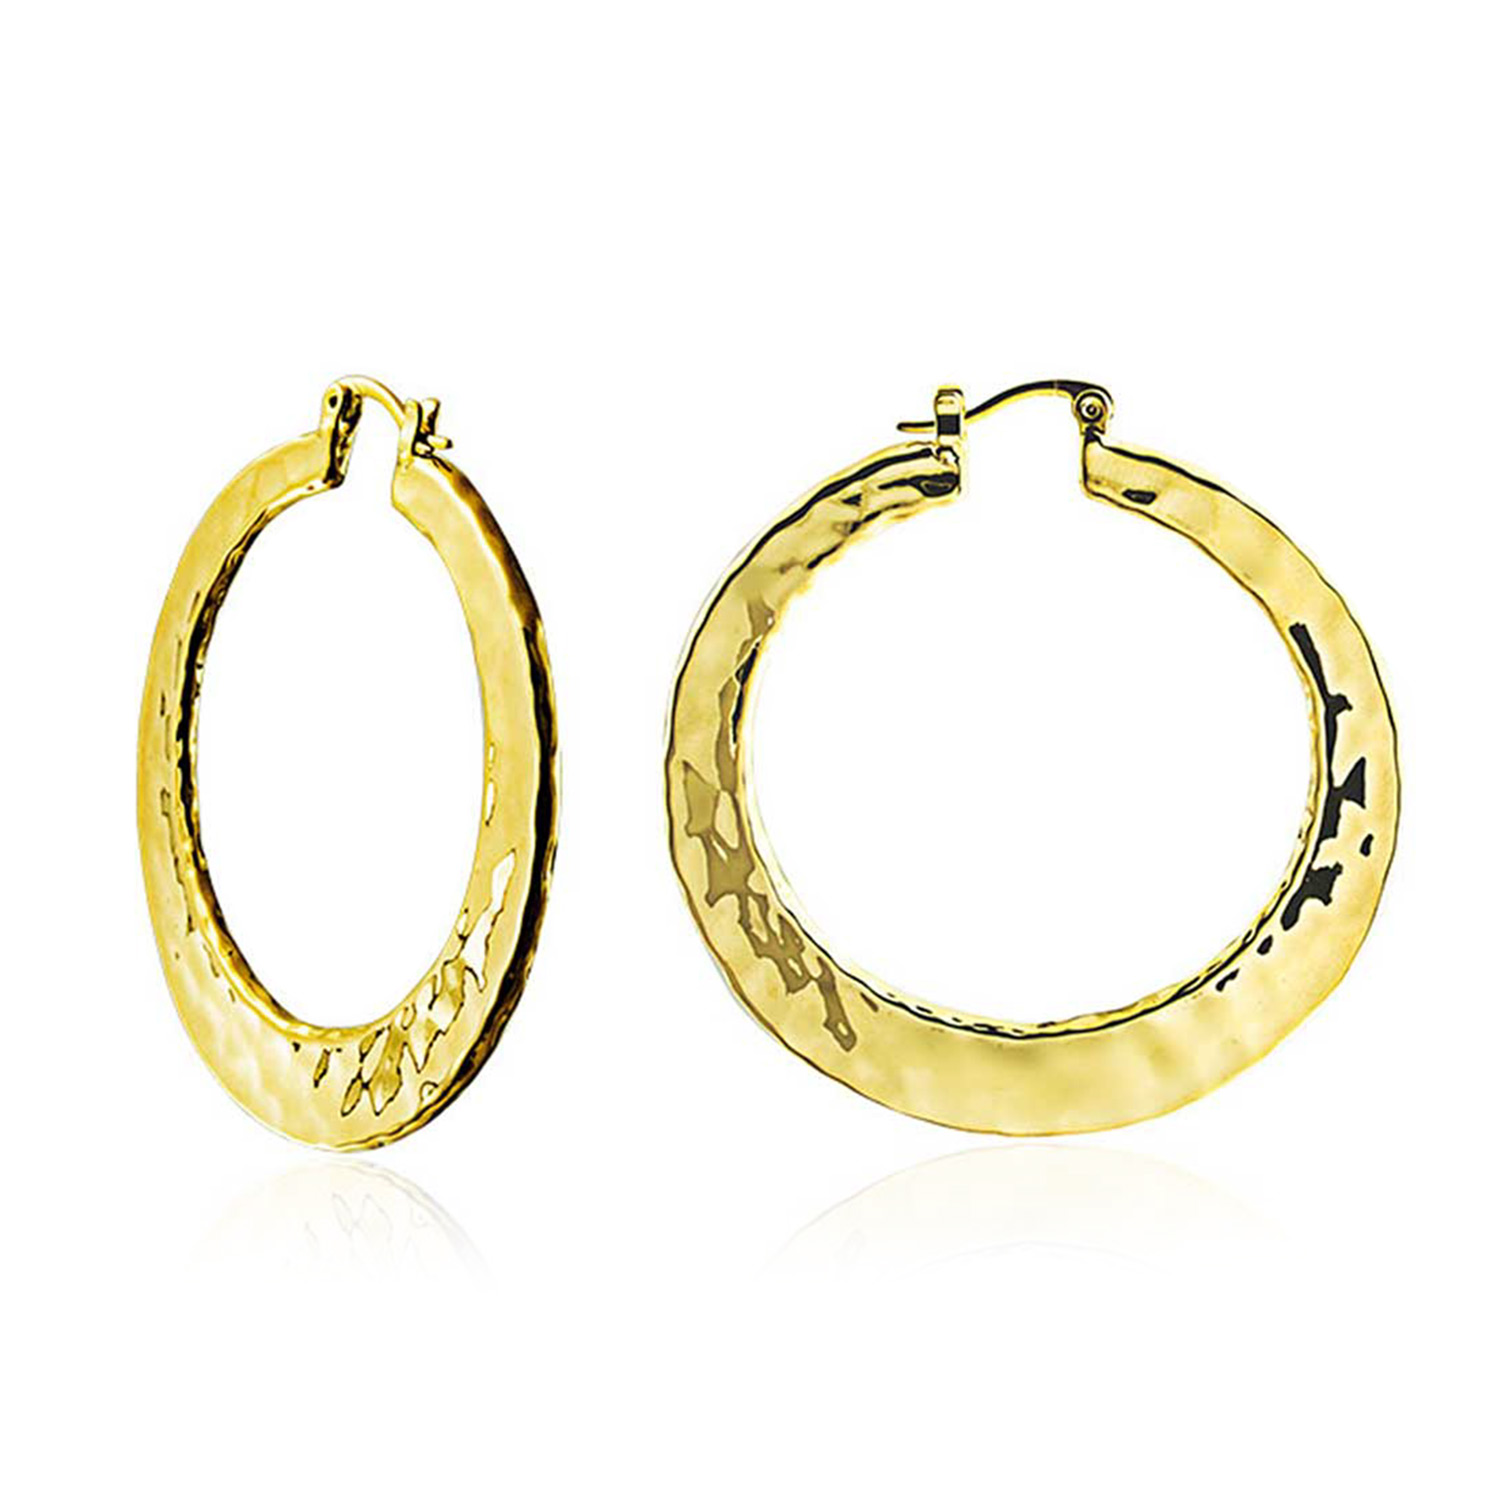 Bling Jewelry High Polished Gold Plated Brass Large Hammered Hoop Earrings 2in